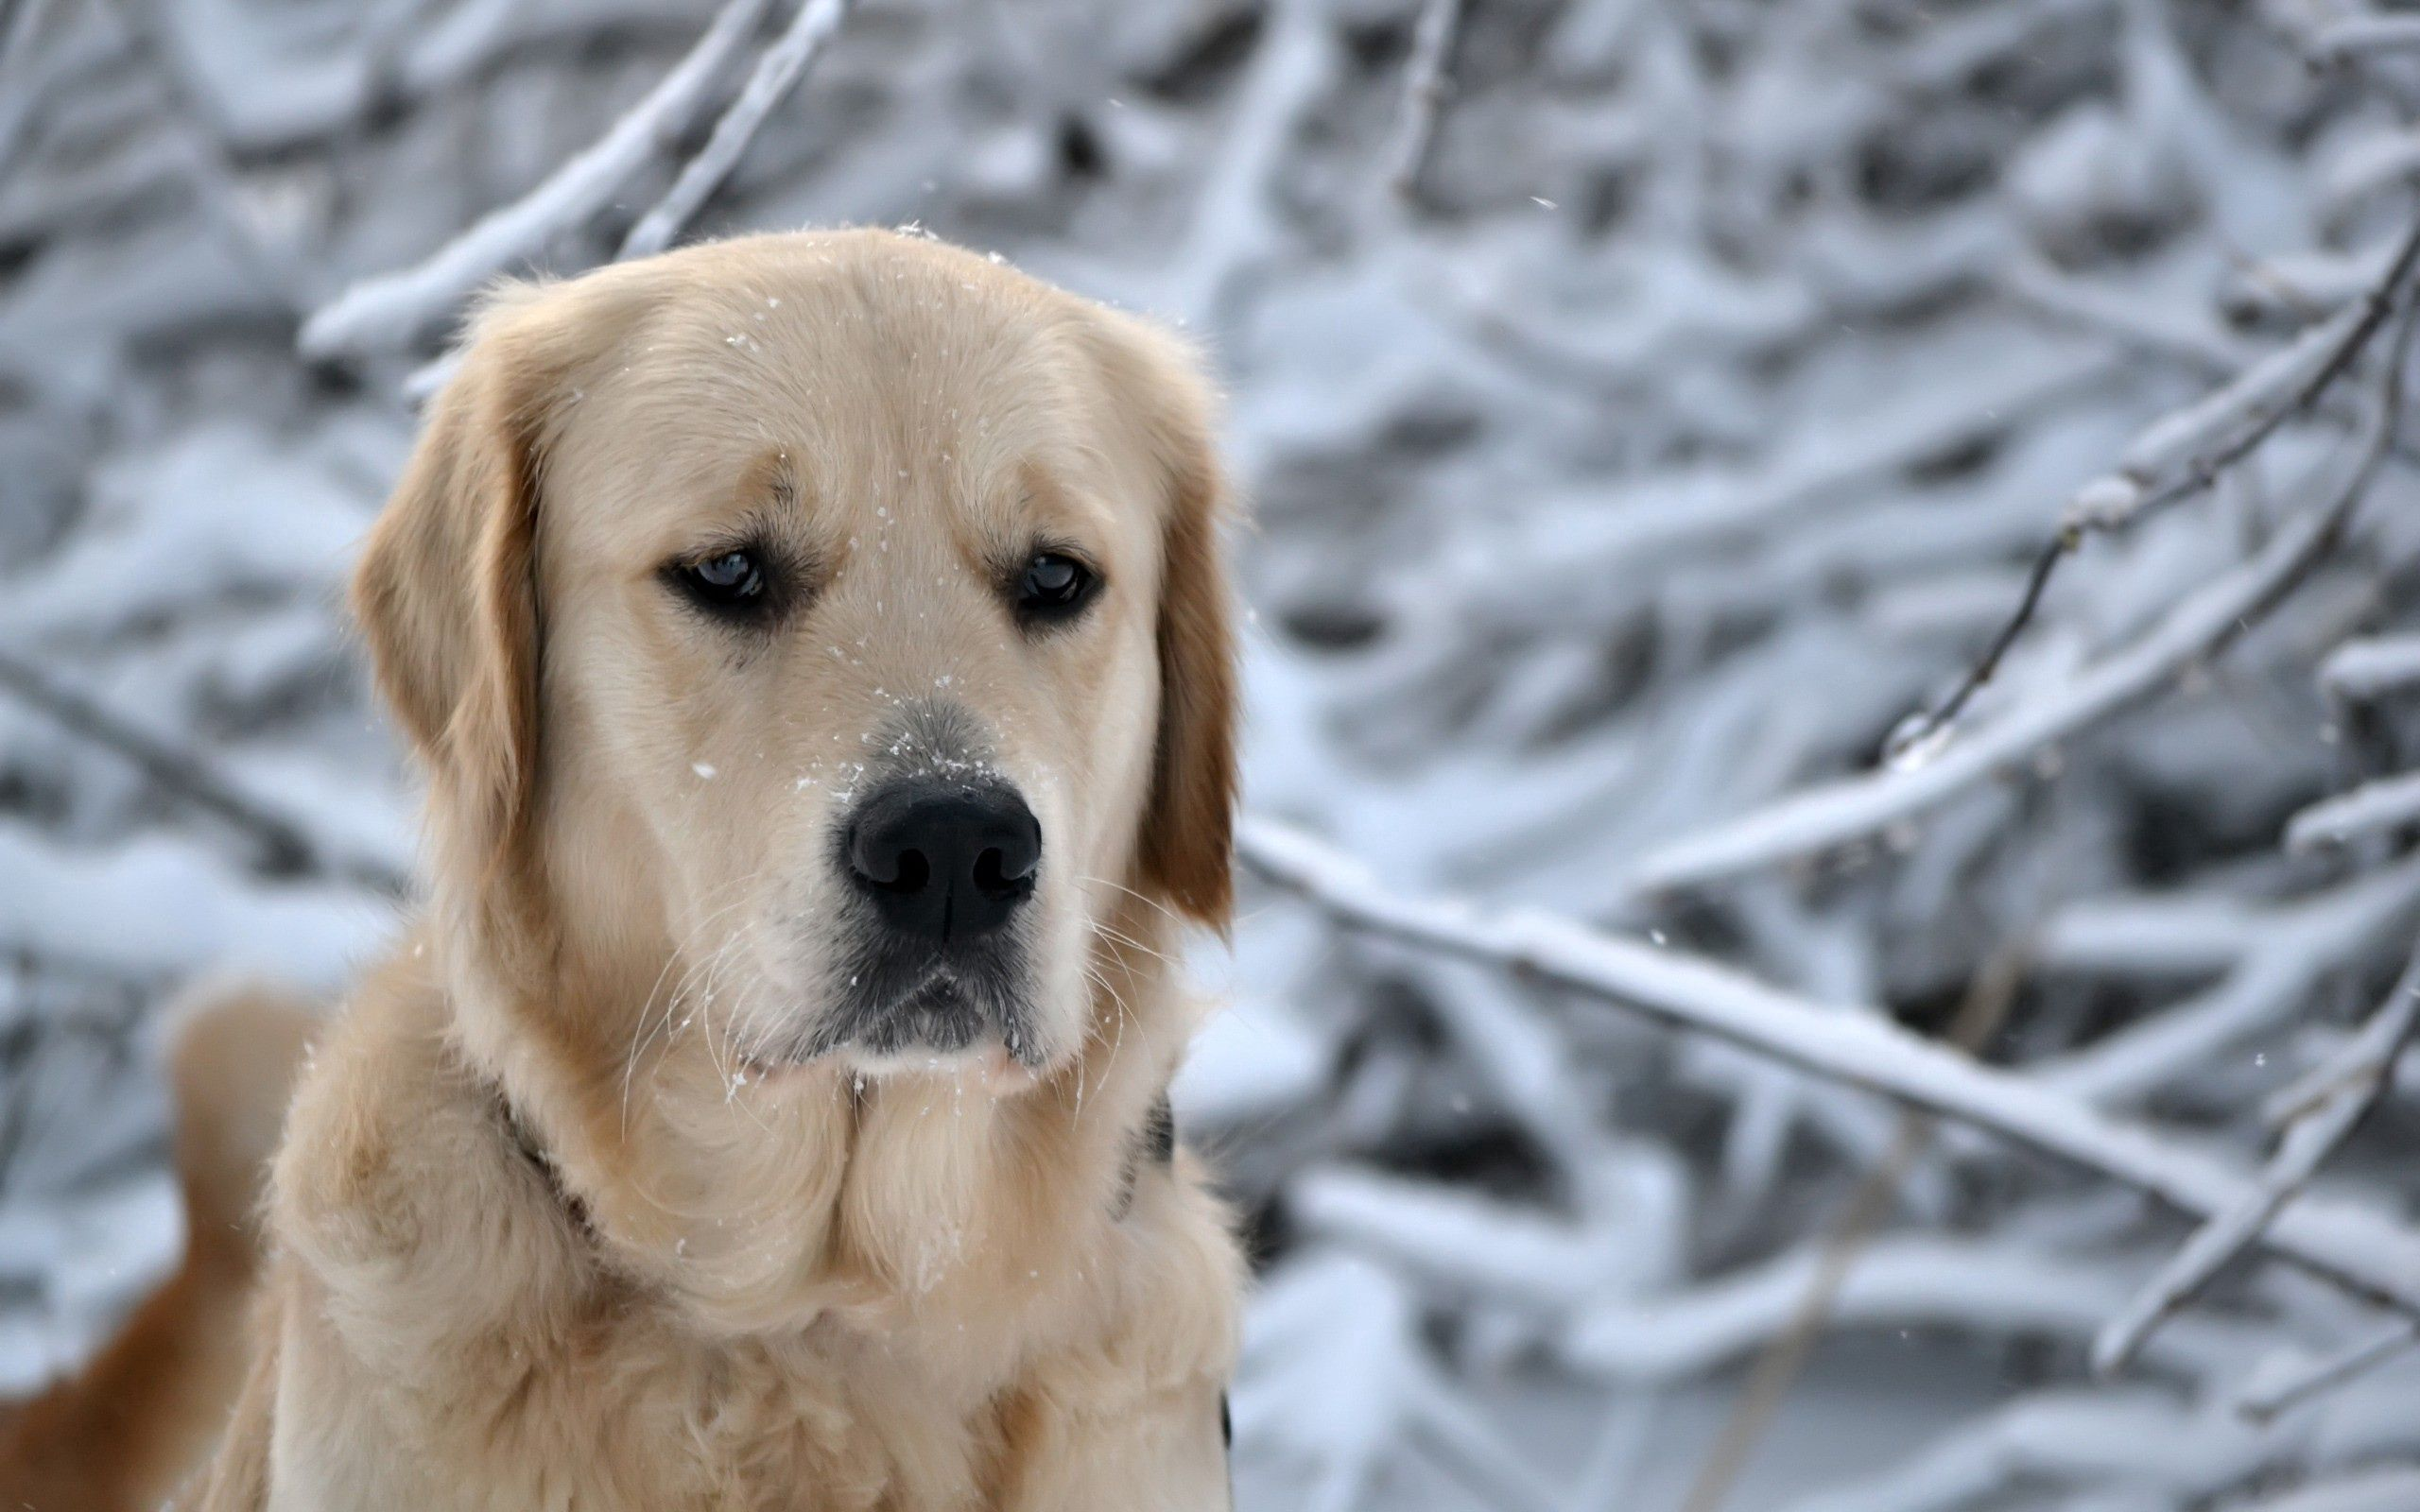 142047 download wallpaper Animals, Dog, Muzzle, Snow, Sadness, Sorrow, Labrador screensavers and pictures for free